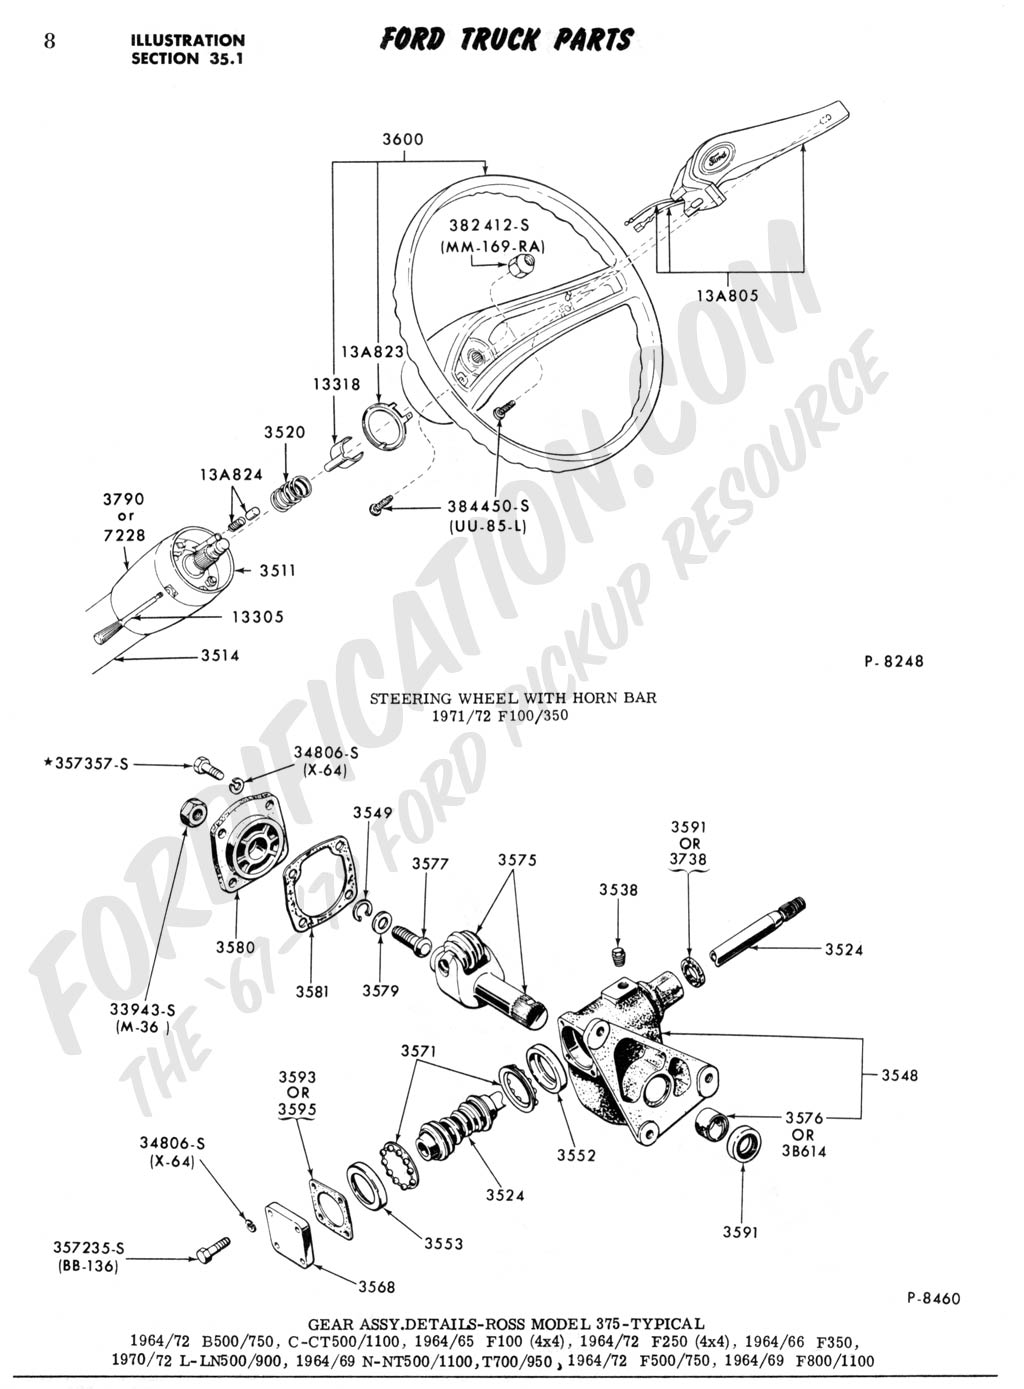 1969 ford f100 steering column wiring diagram